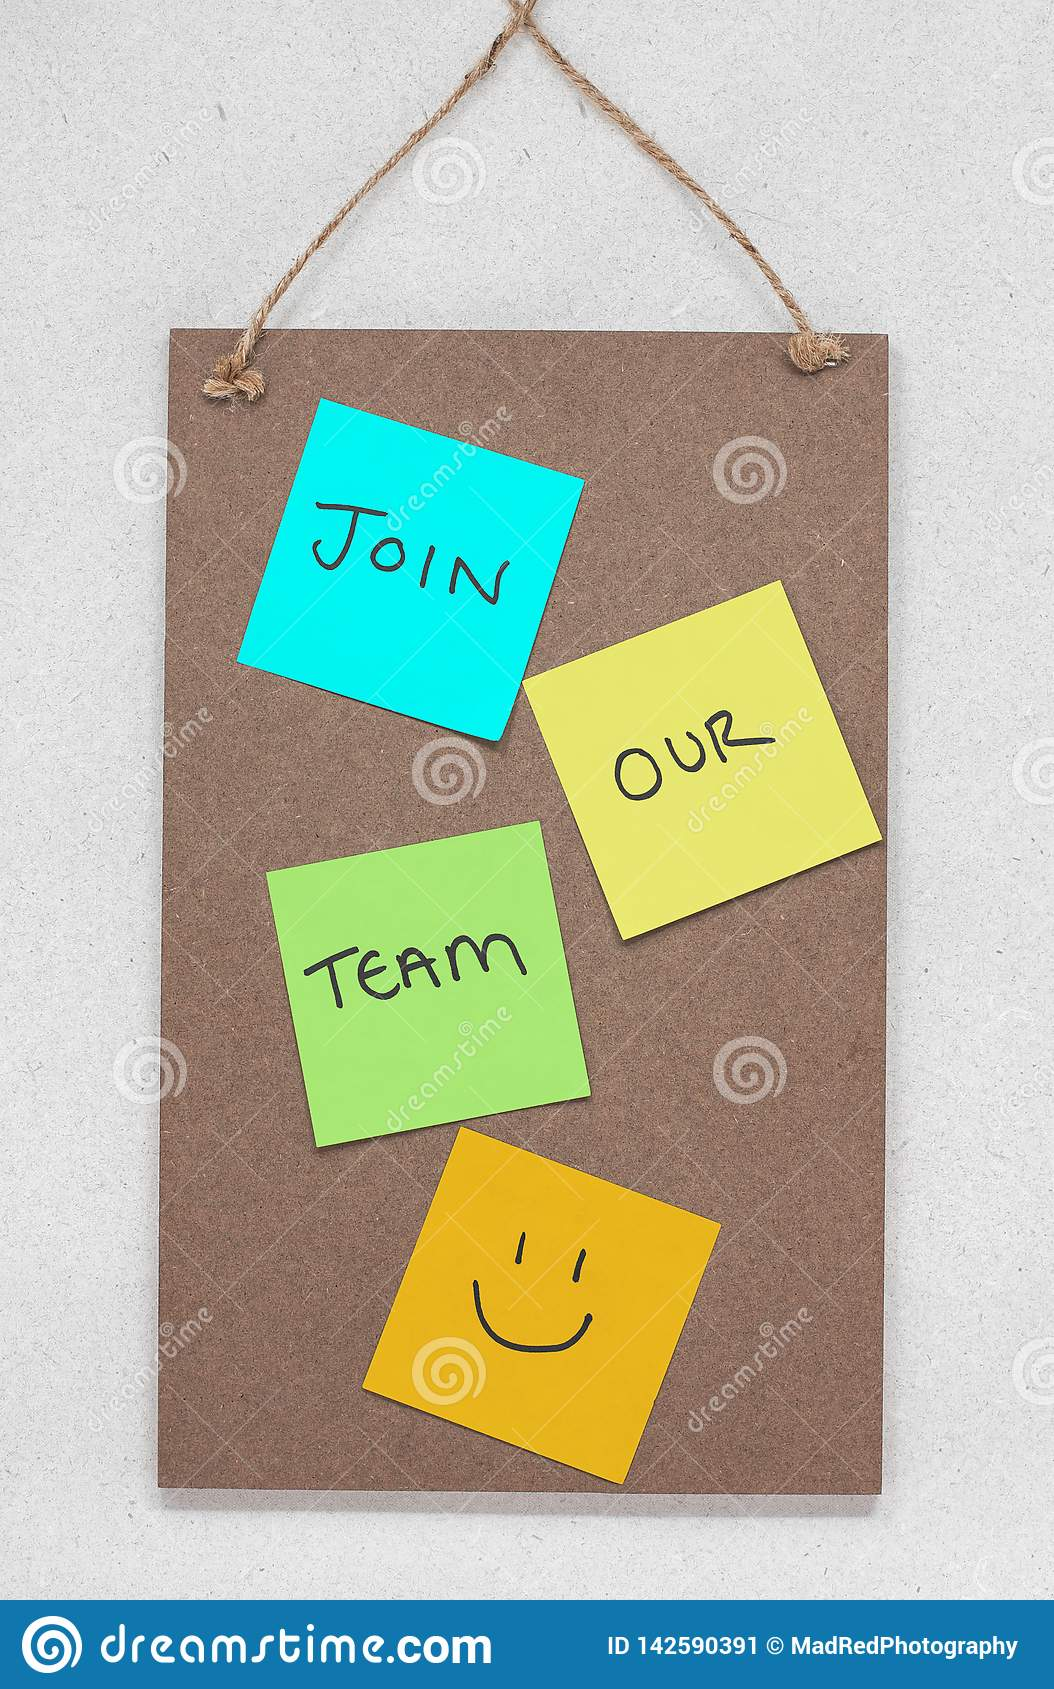 Join our team, text written on colourful sticky notes on a wooden noticeboard